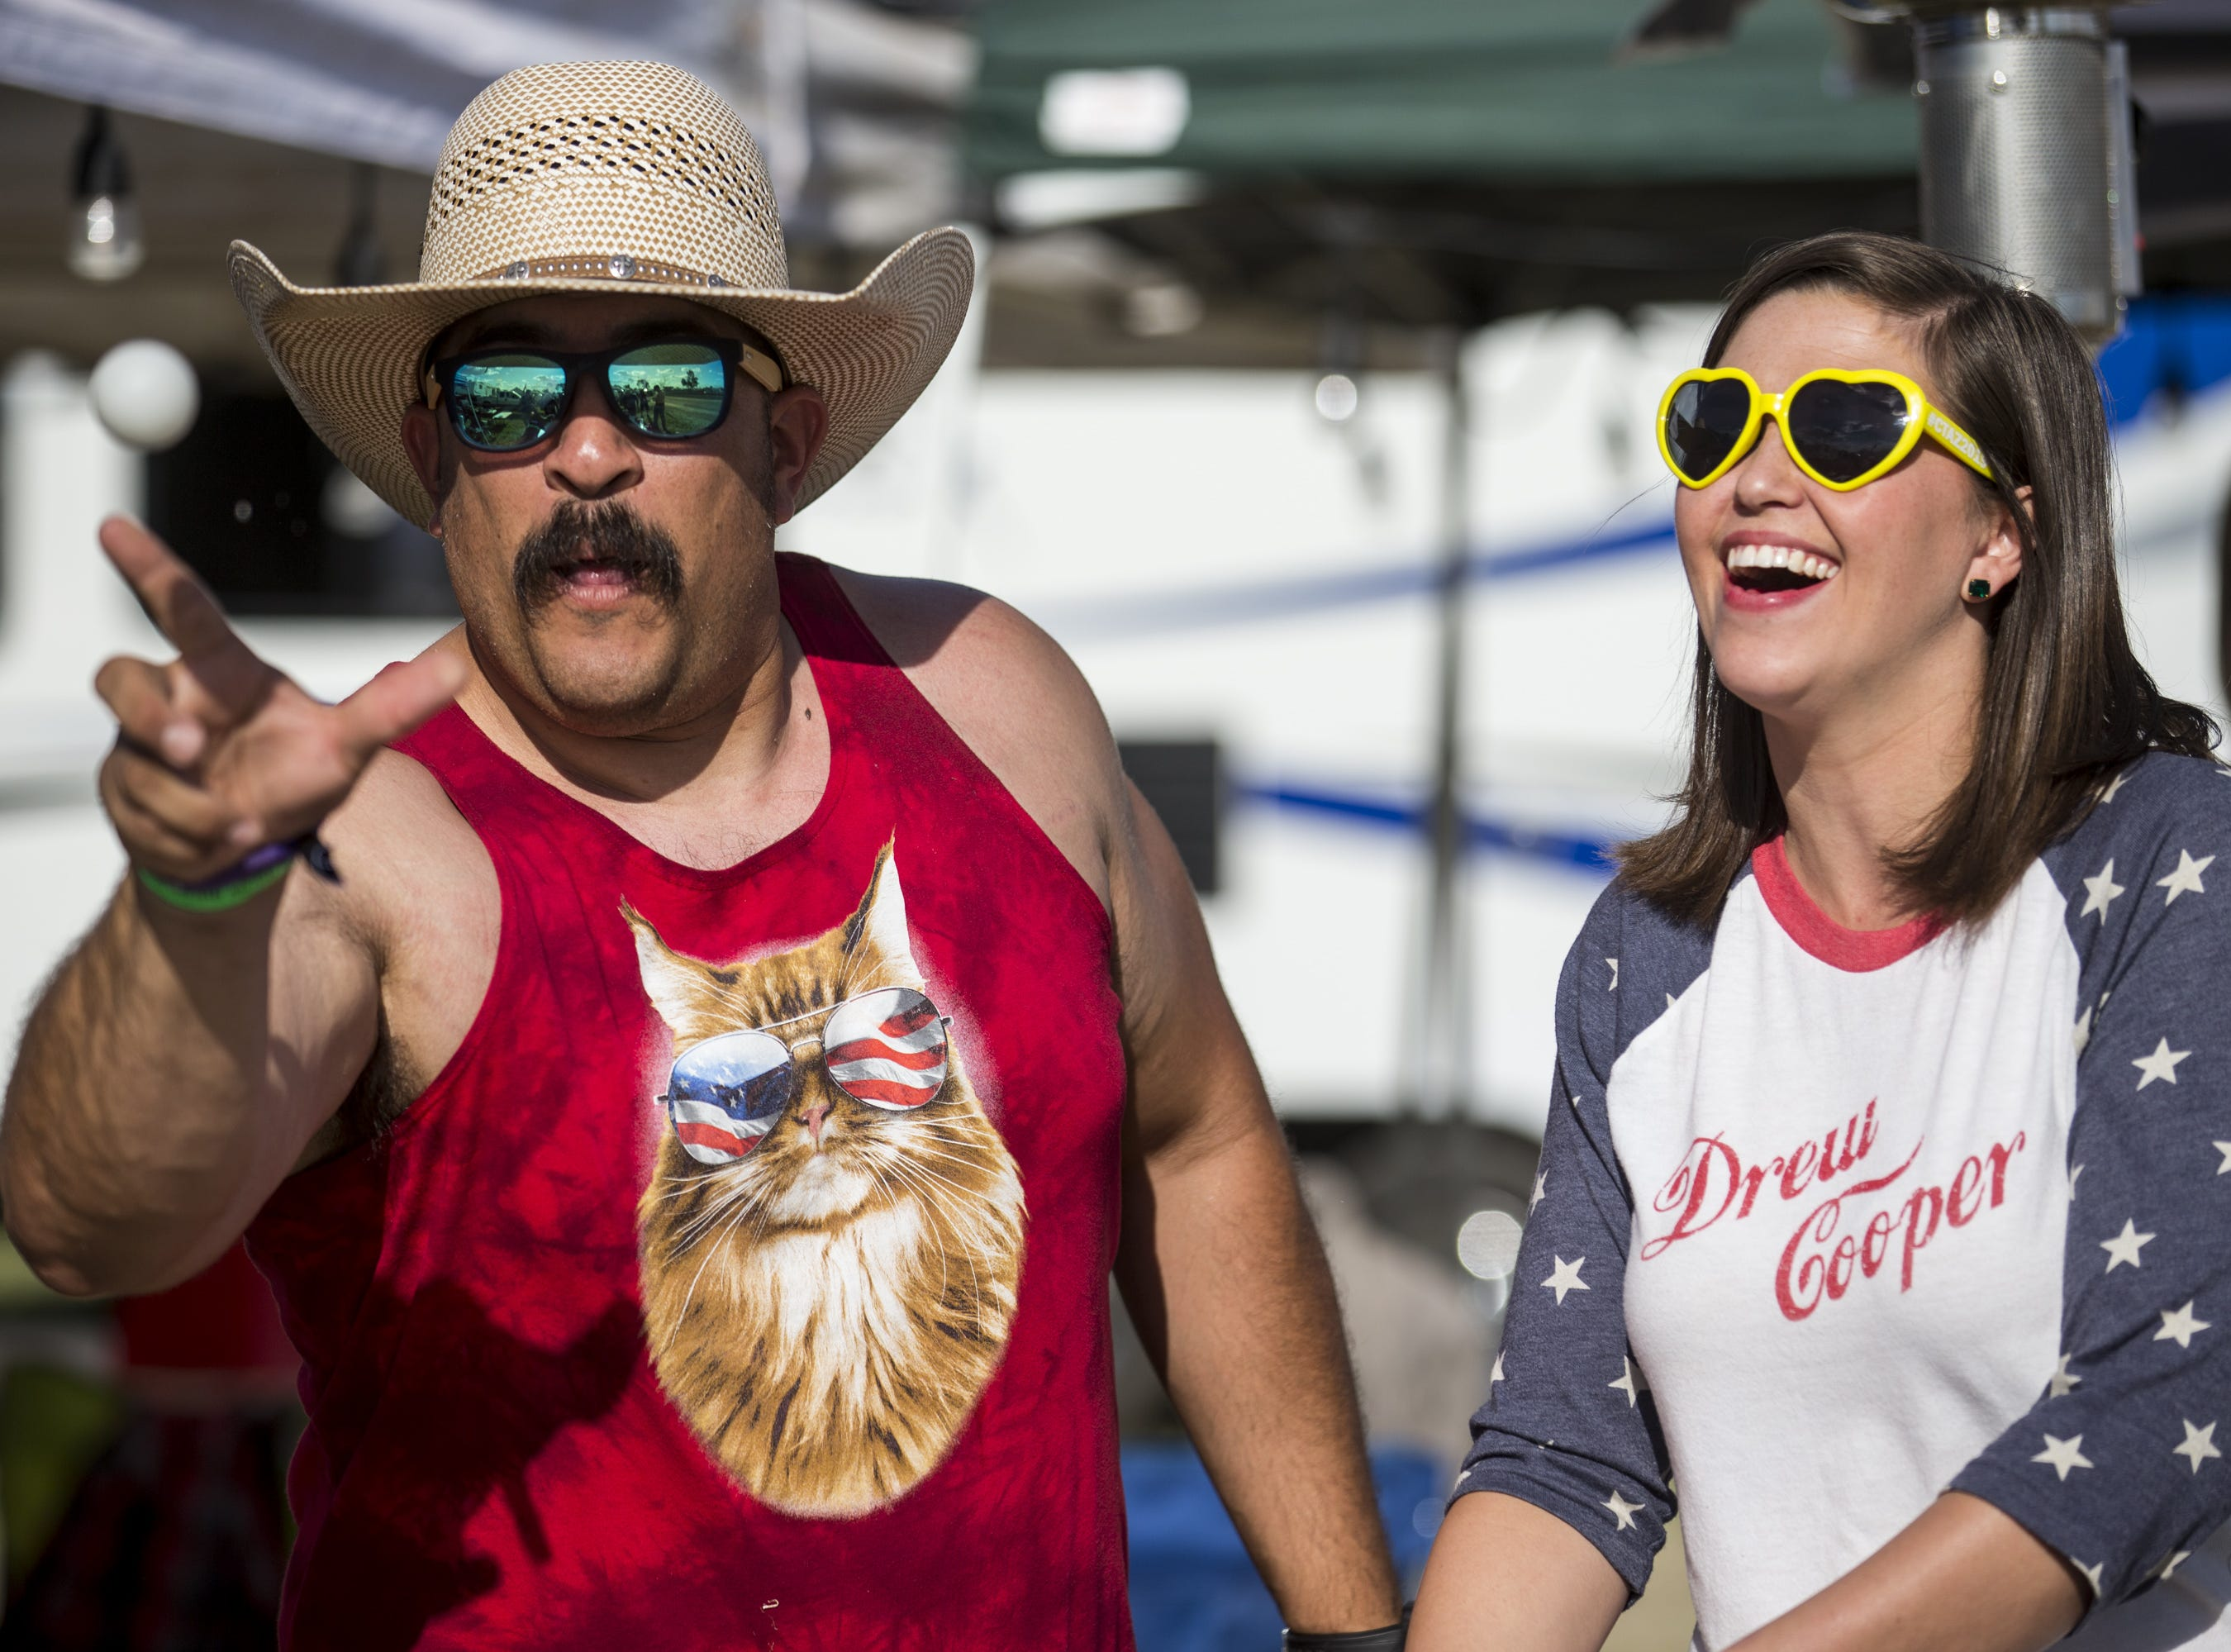 DJ Anaya and Kaylee Donath play beer pong on Friday, April 12, 2019, during Day 2 of Country Thunder Arizona in Florence, Ariz.